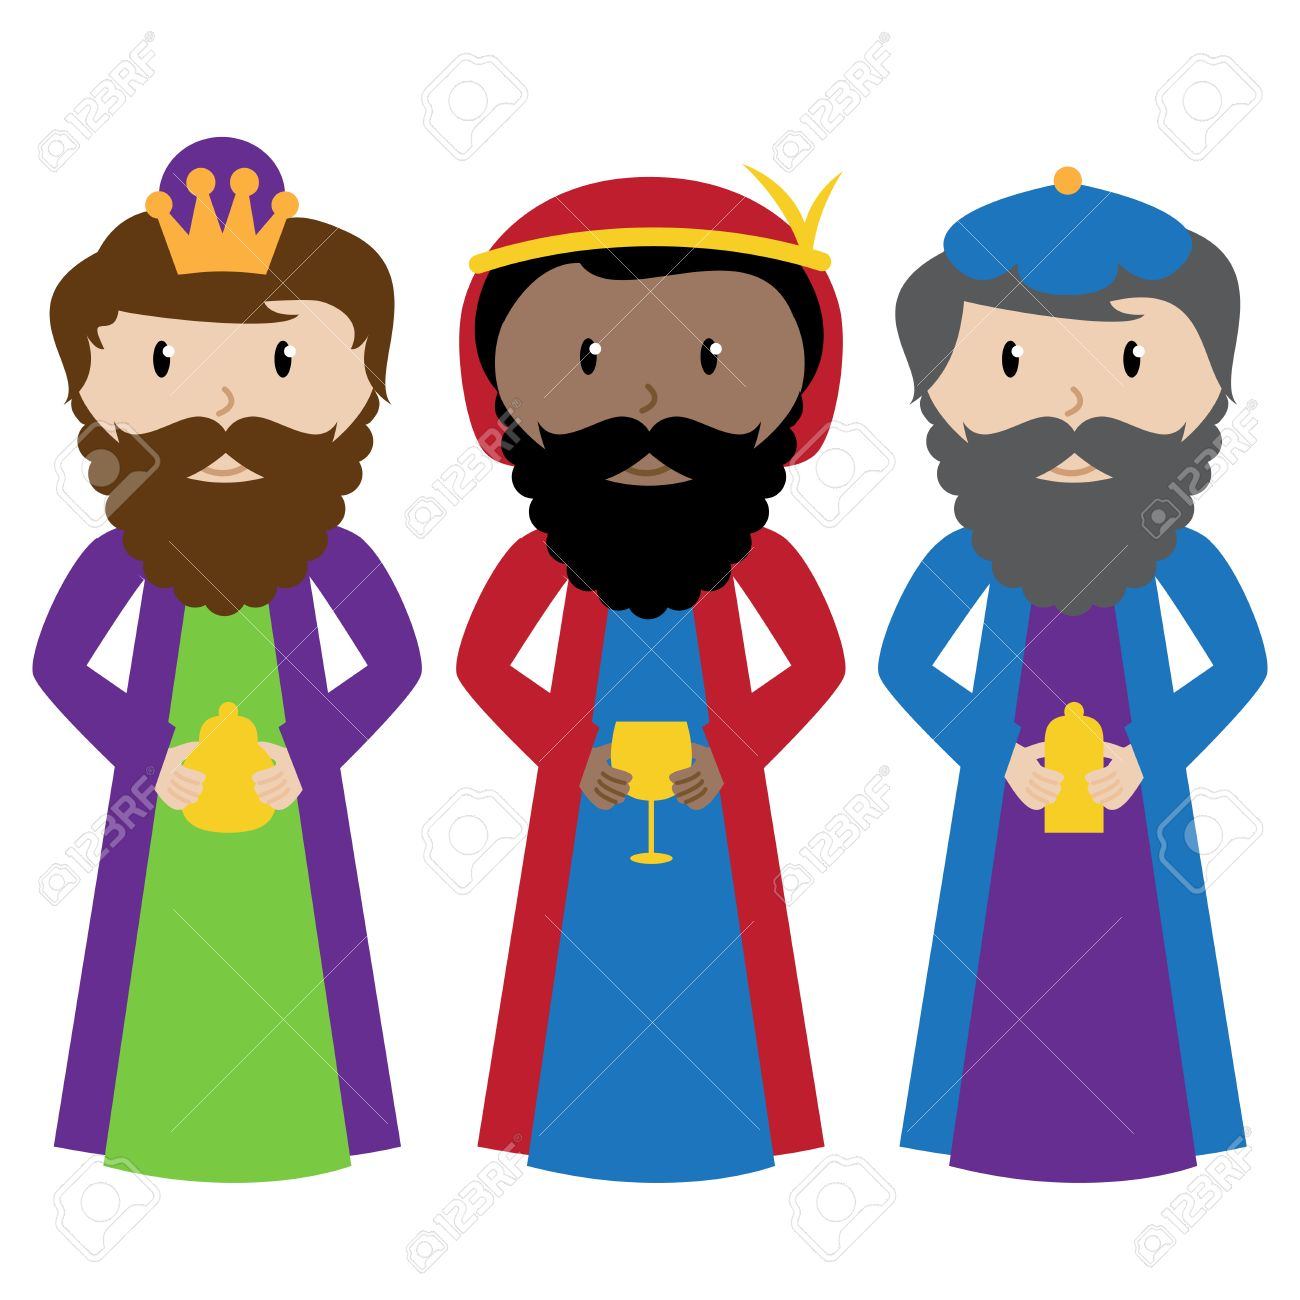 vector collection of the three wise men or magi royalty free rh 123rf com three wise men clip art black and white three wise men clip art black and white